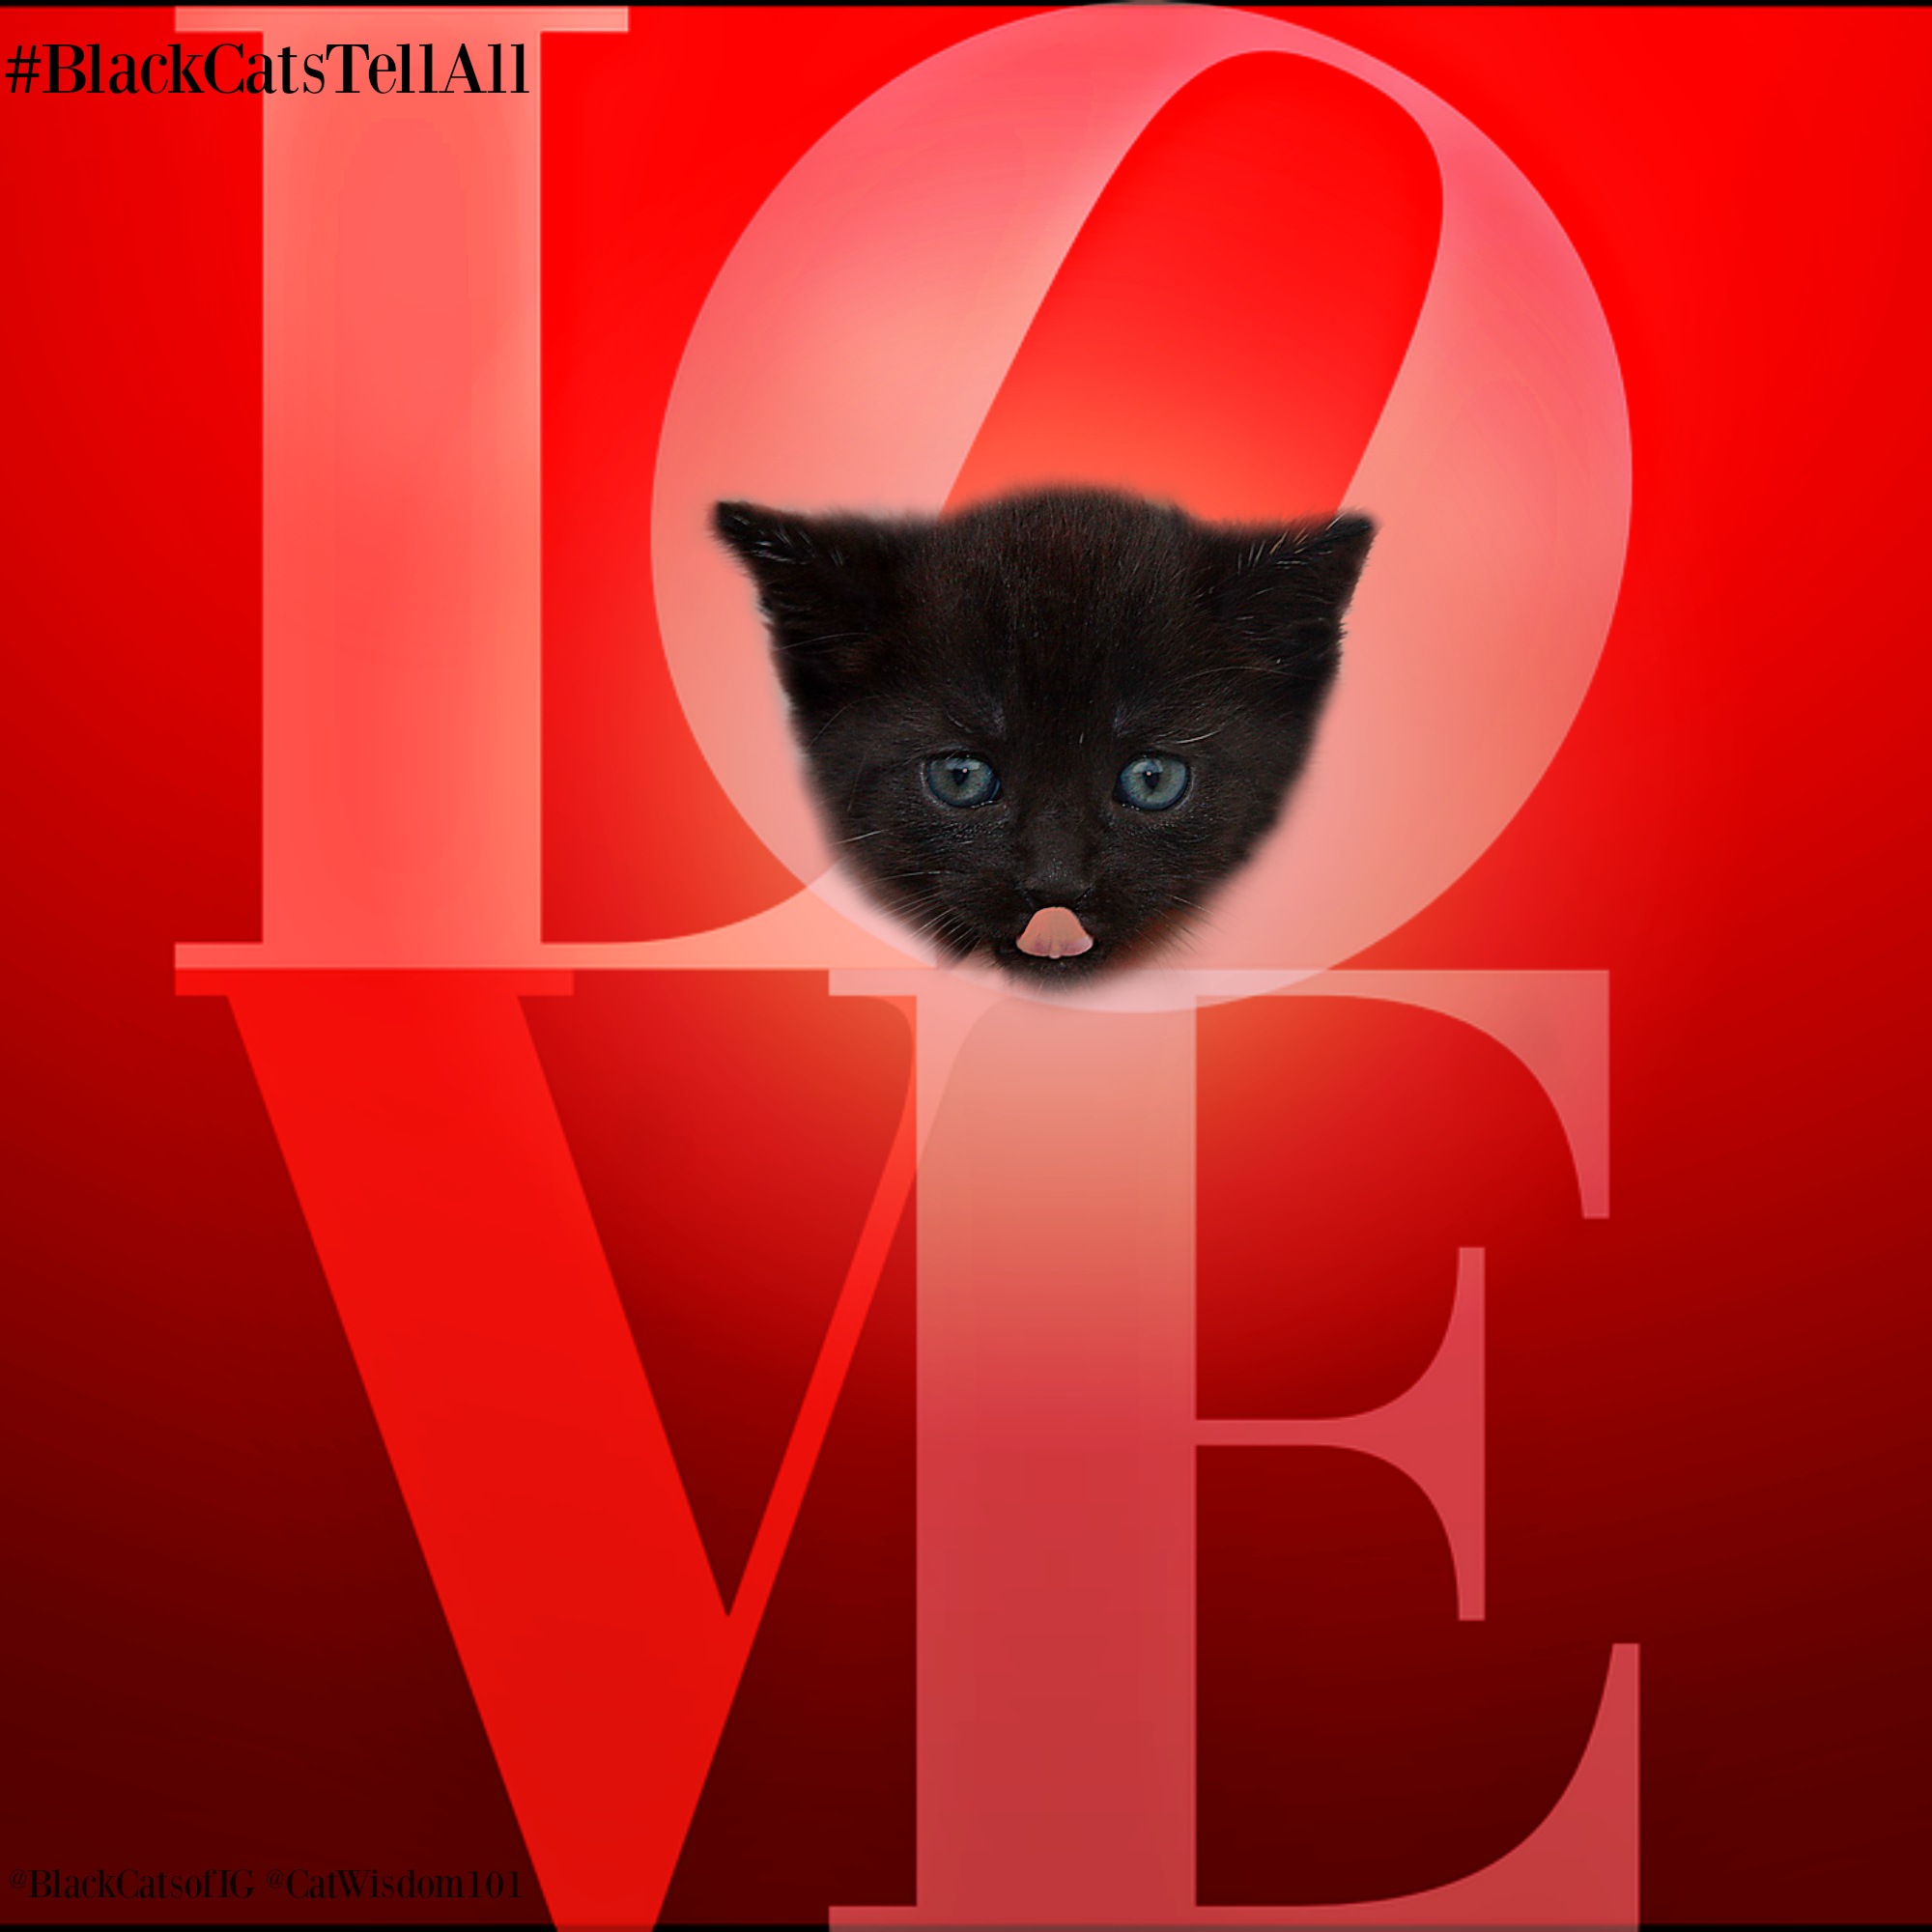 Love_blackcatstellall_valentine